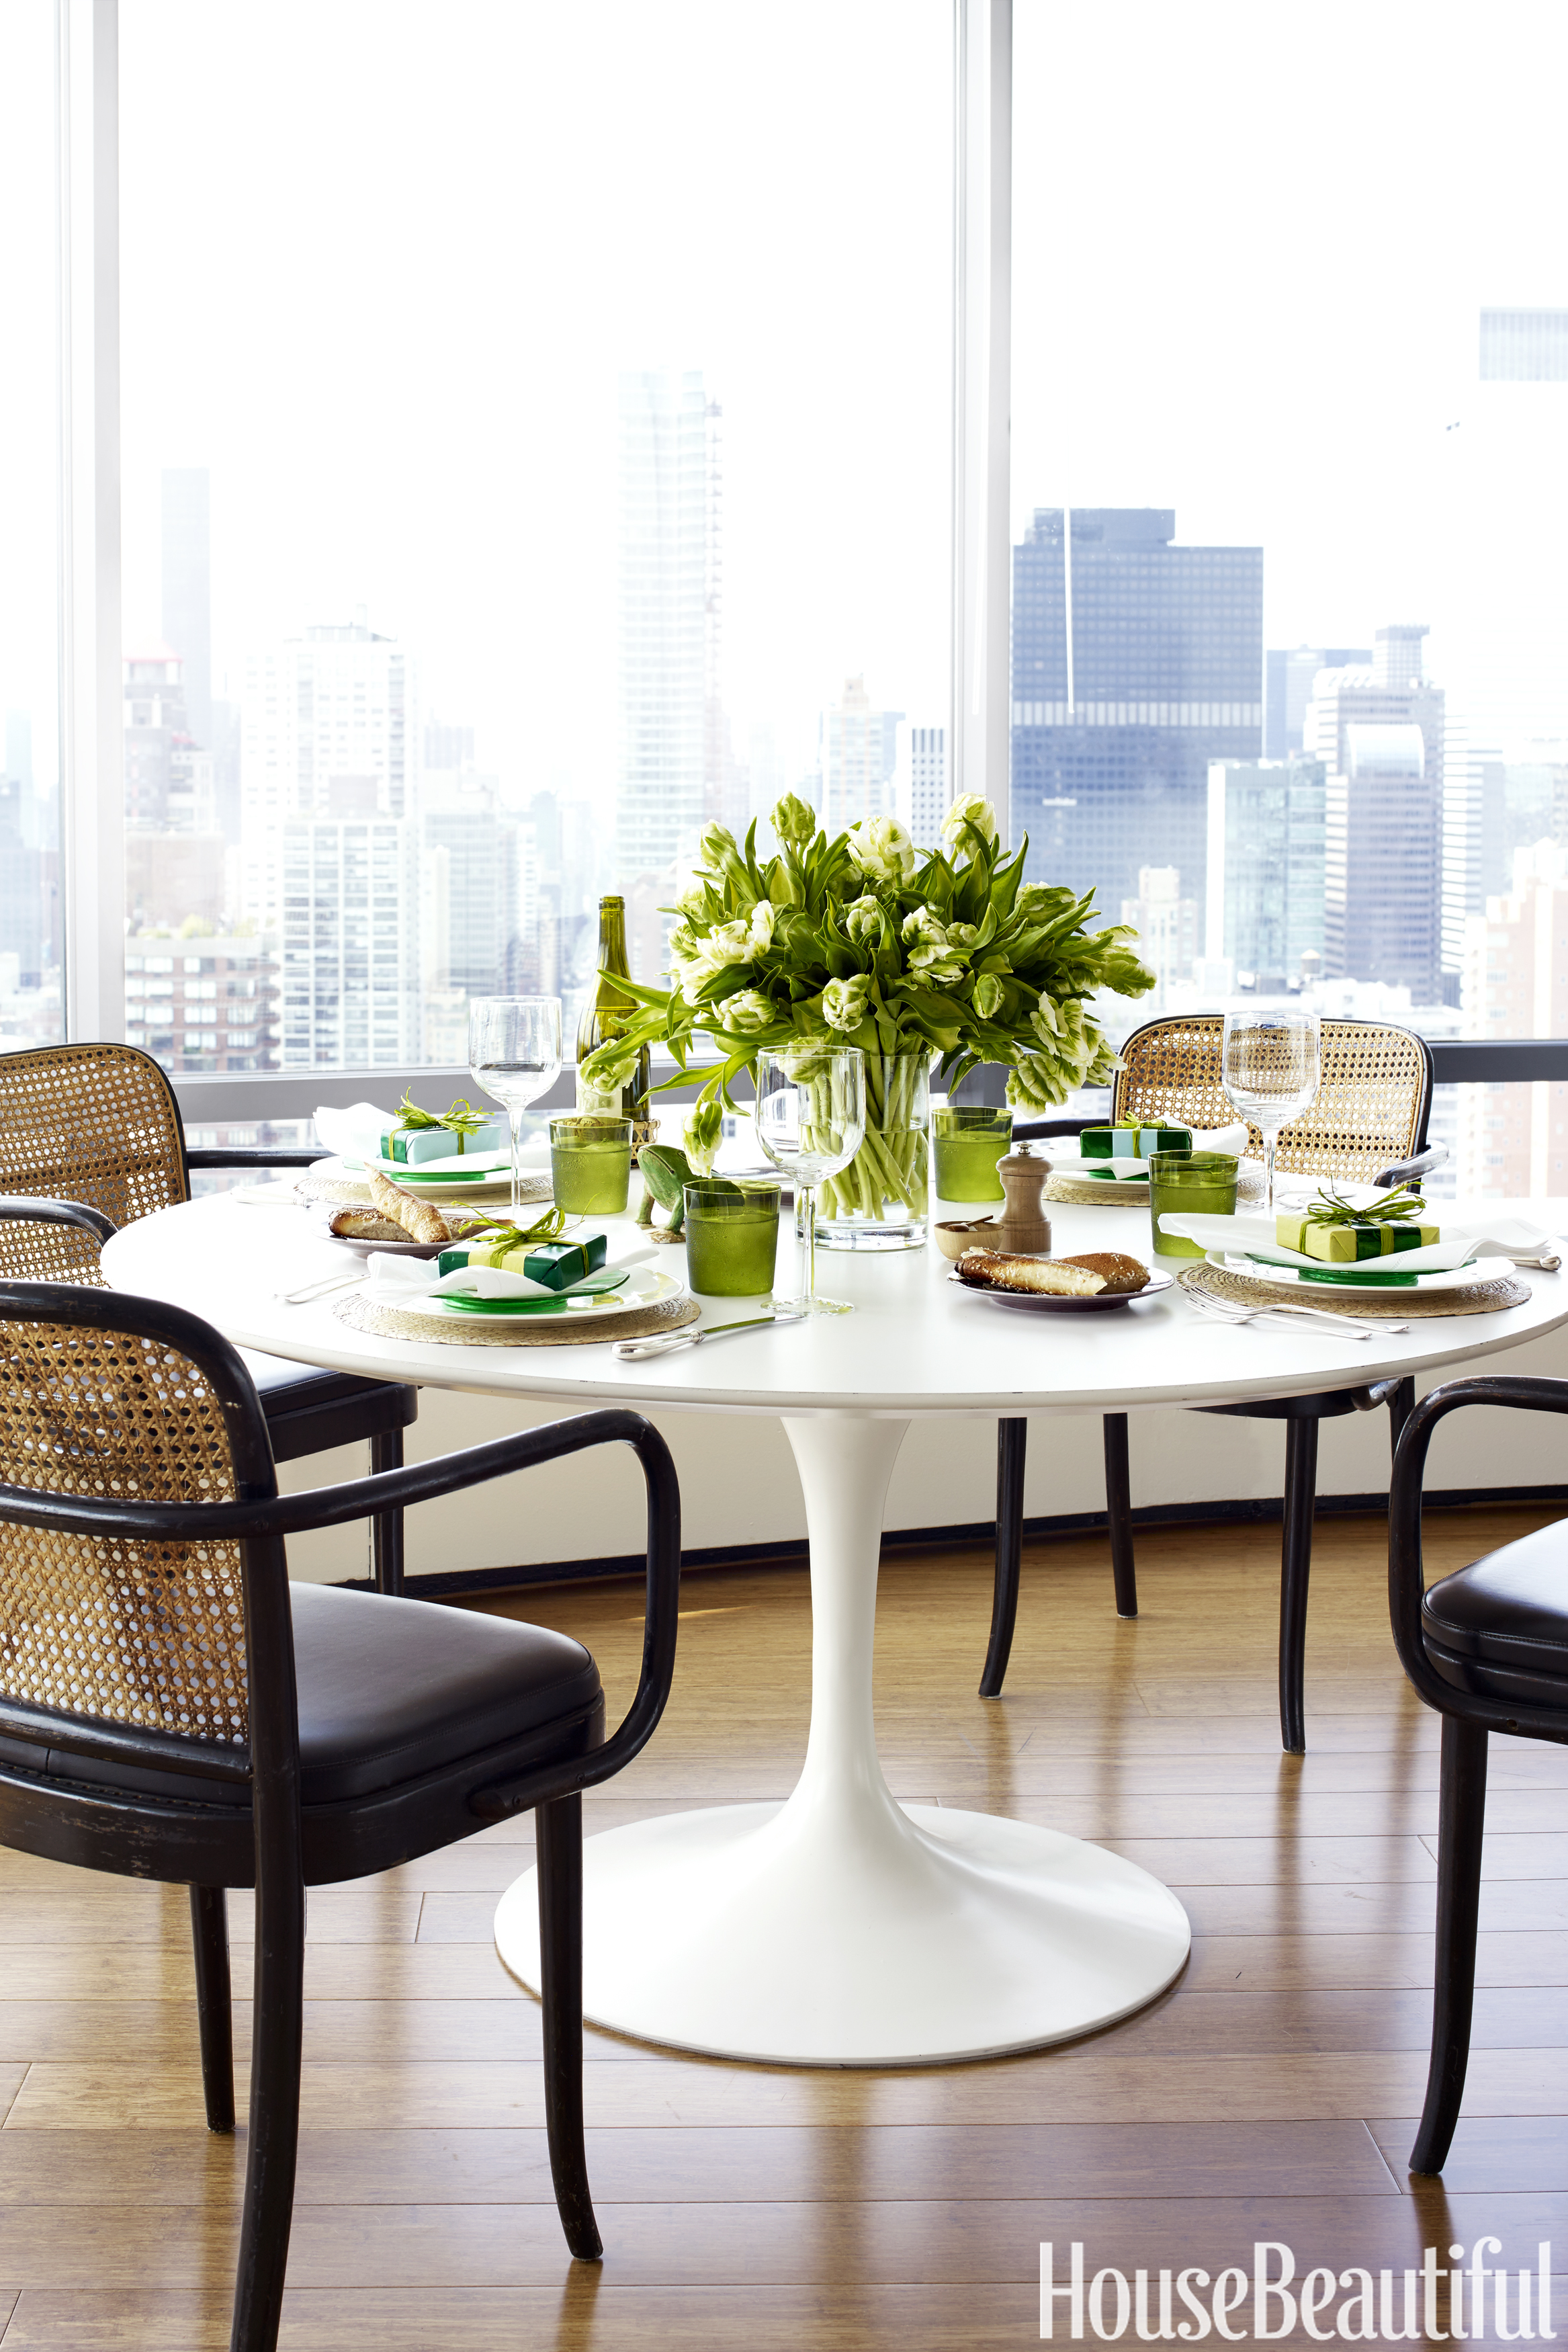 Tom scheerer 39 s manhattan apartment curated and staged decor for Kitchen dining room wallpaper